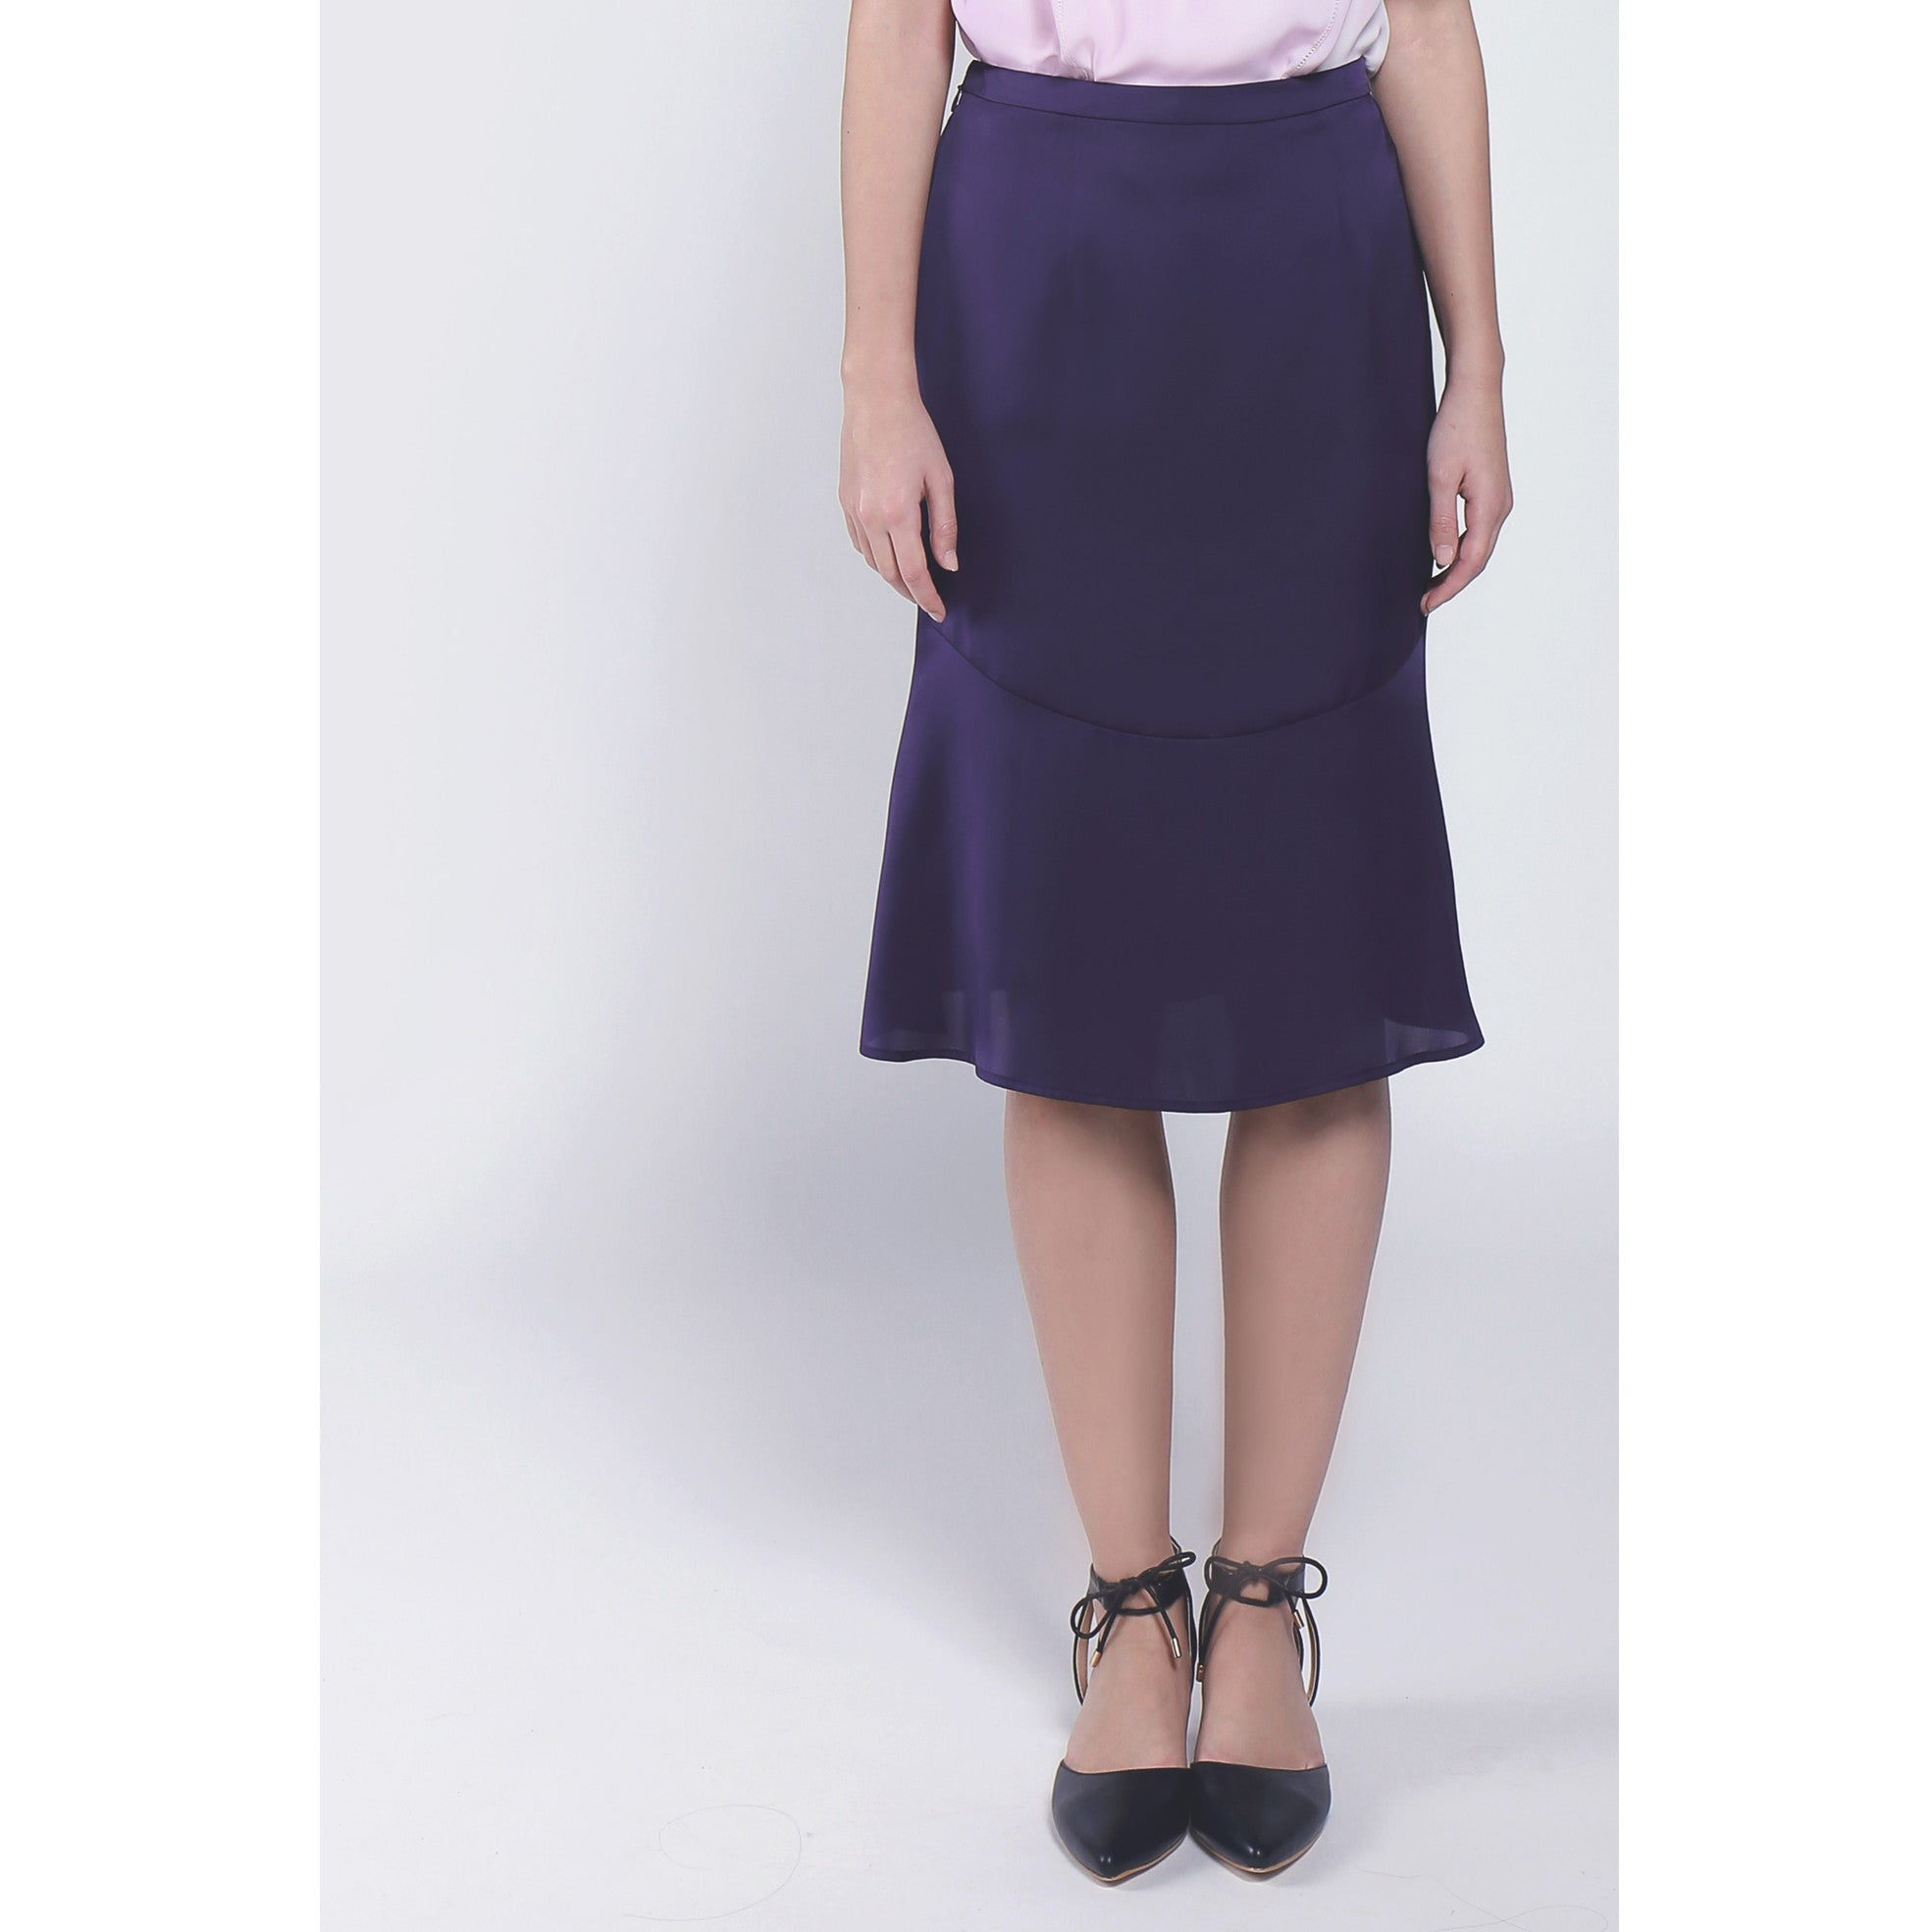 Trumpet elegant purple skirt